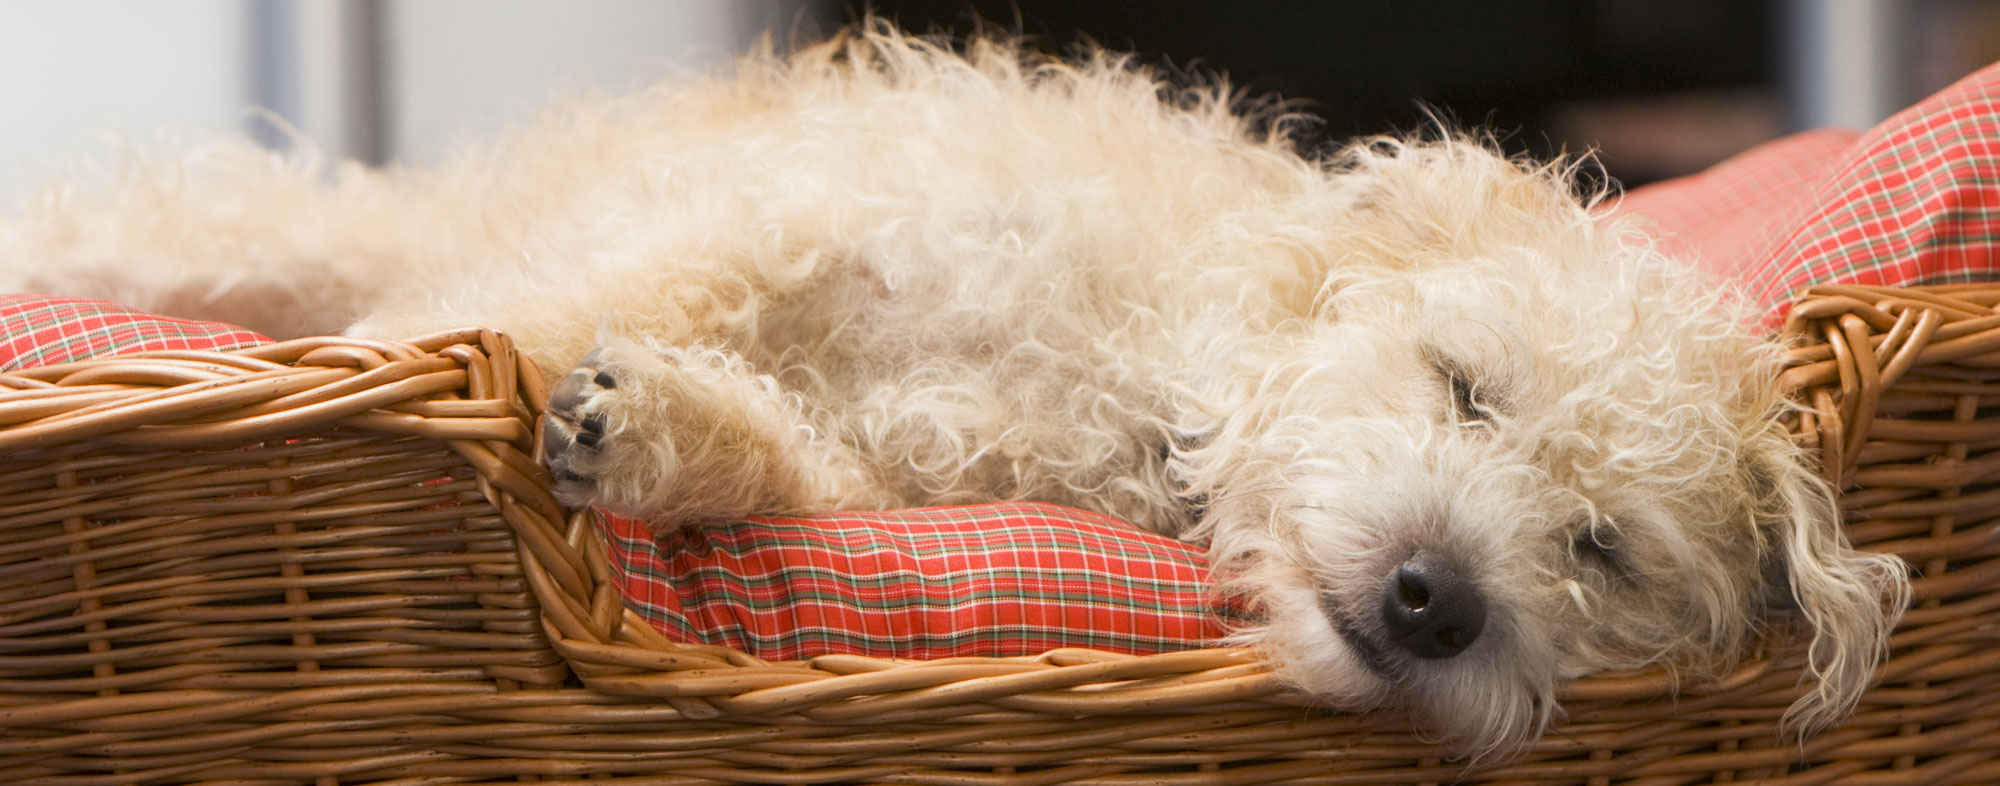 Dogs can sleep as long as 12 hours a day inside of a dog bed